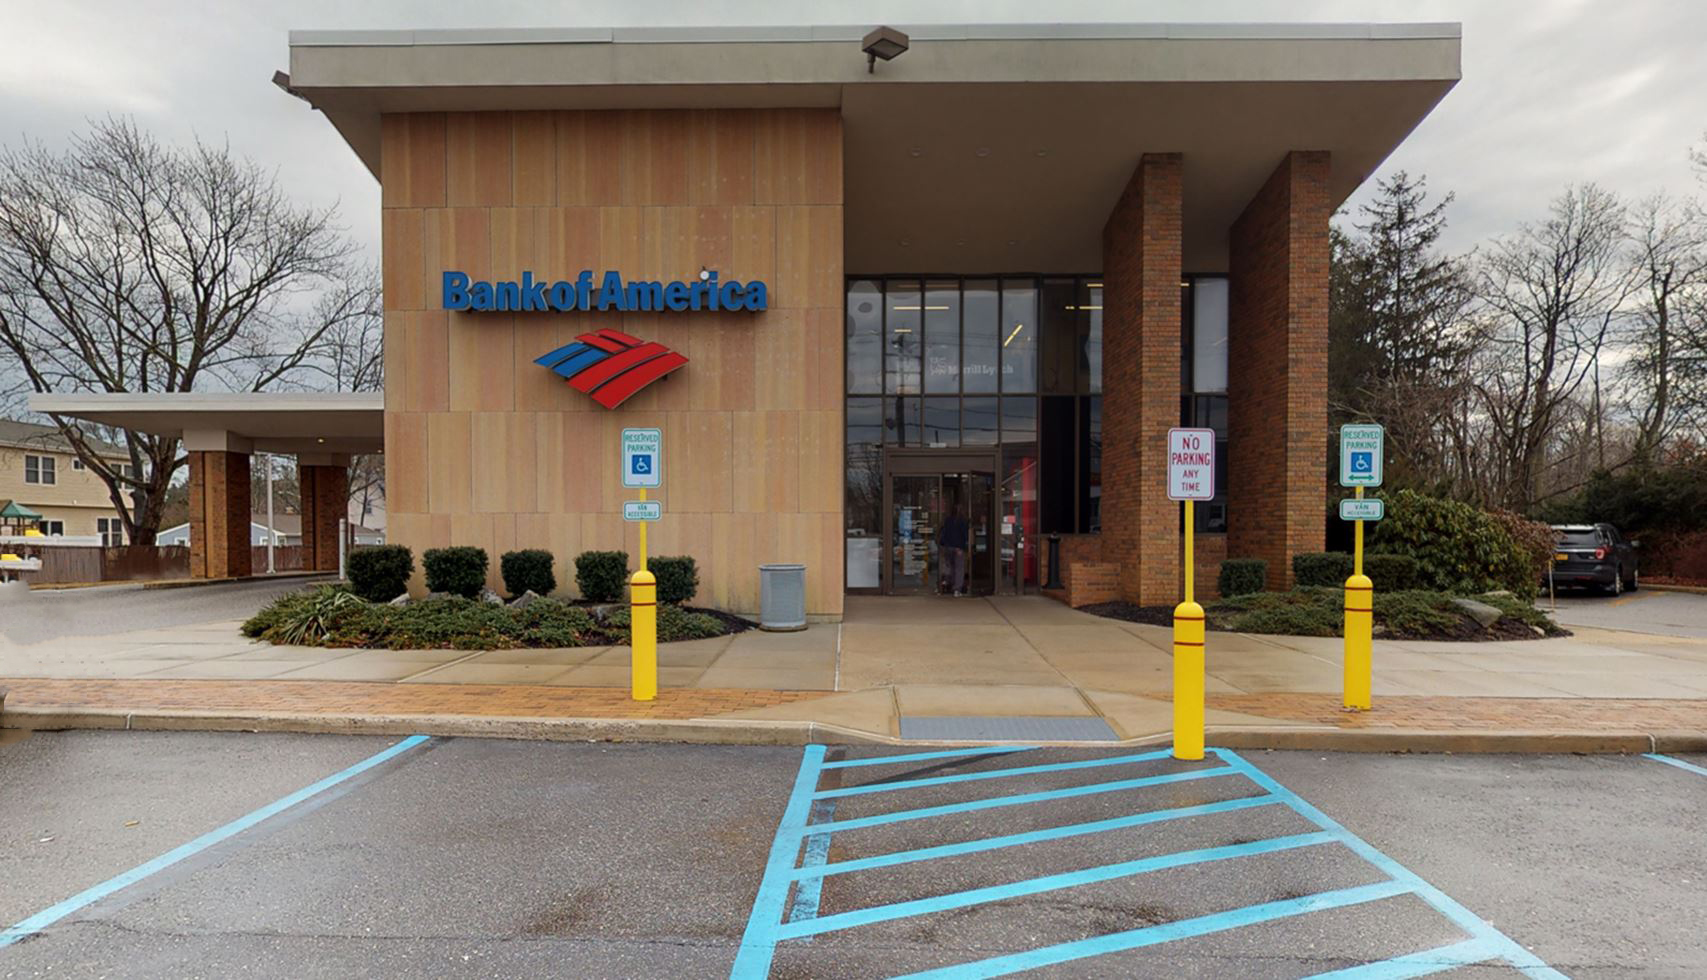 Bank of America financial center with drive-thru ATM | 540 Montauk Hwy, West Islip, NY 11795